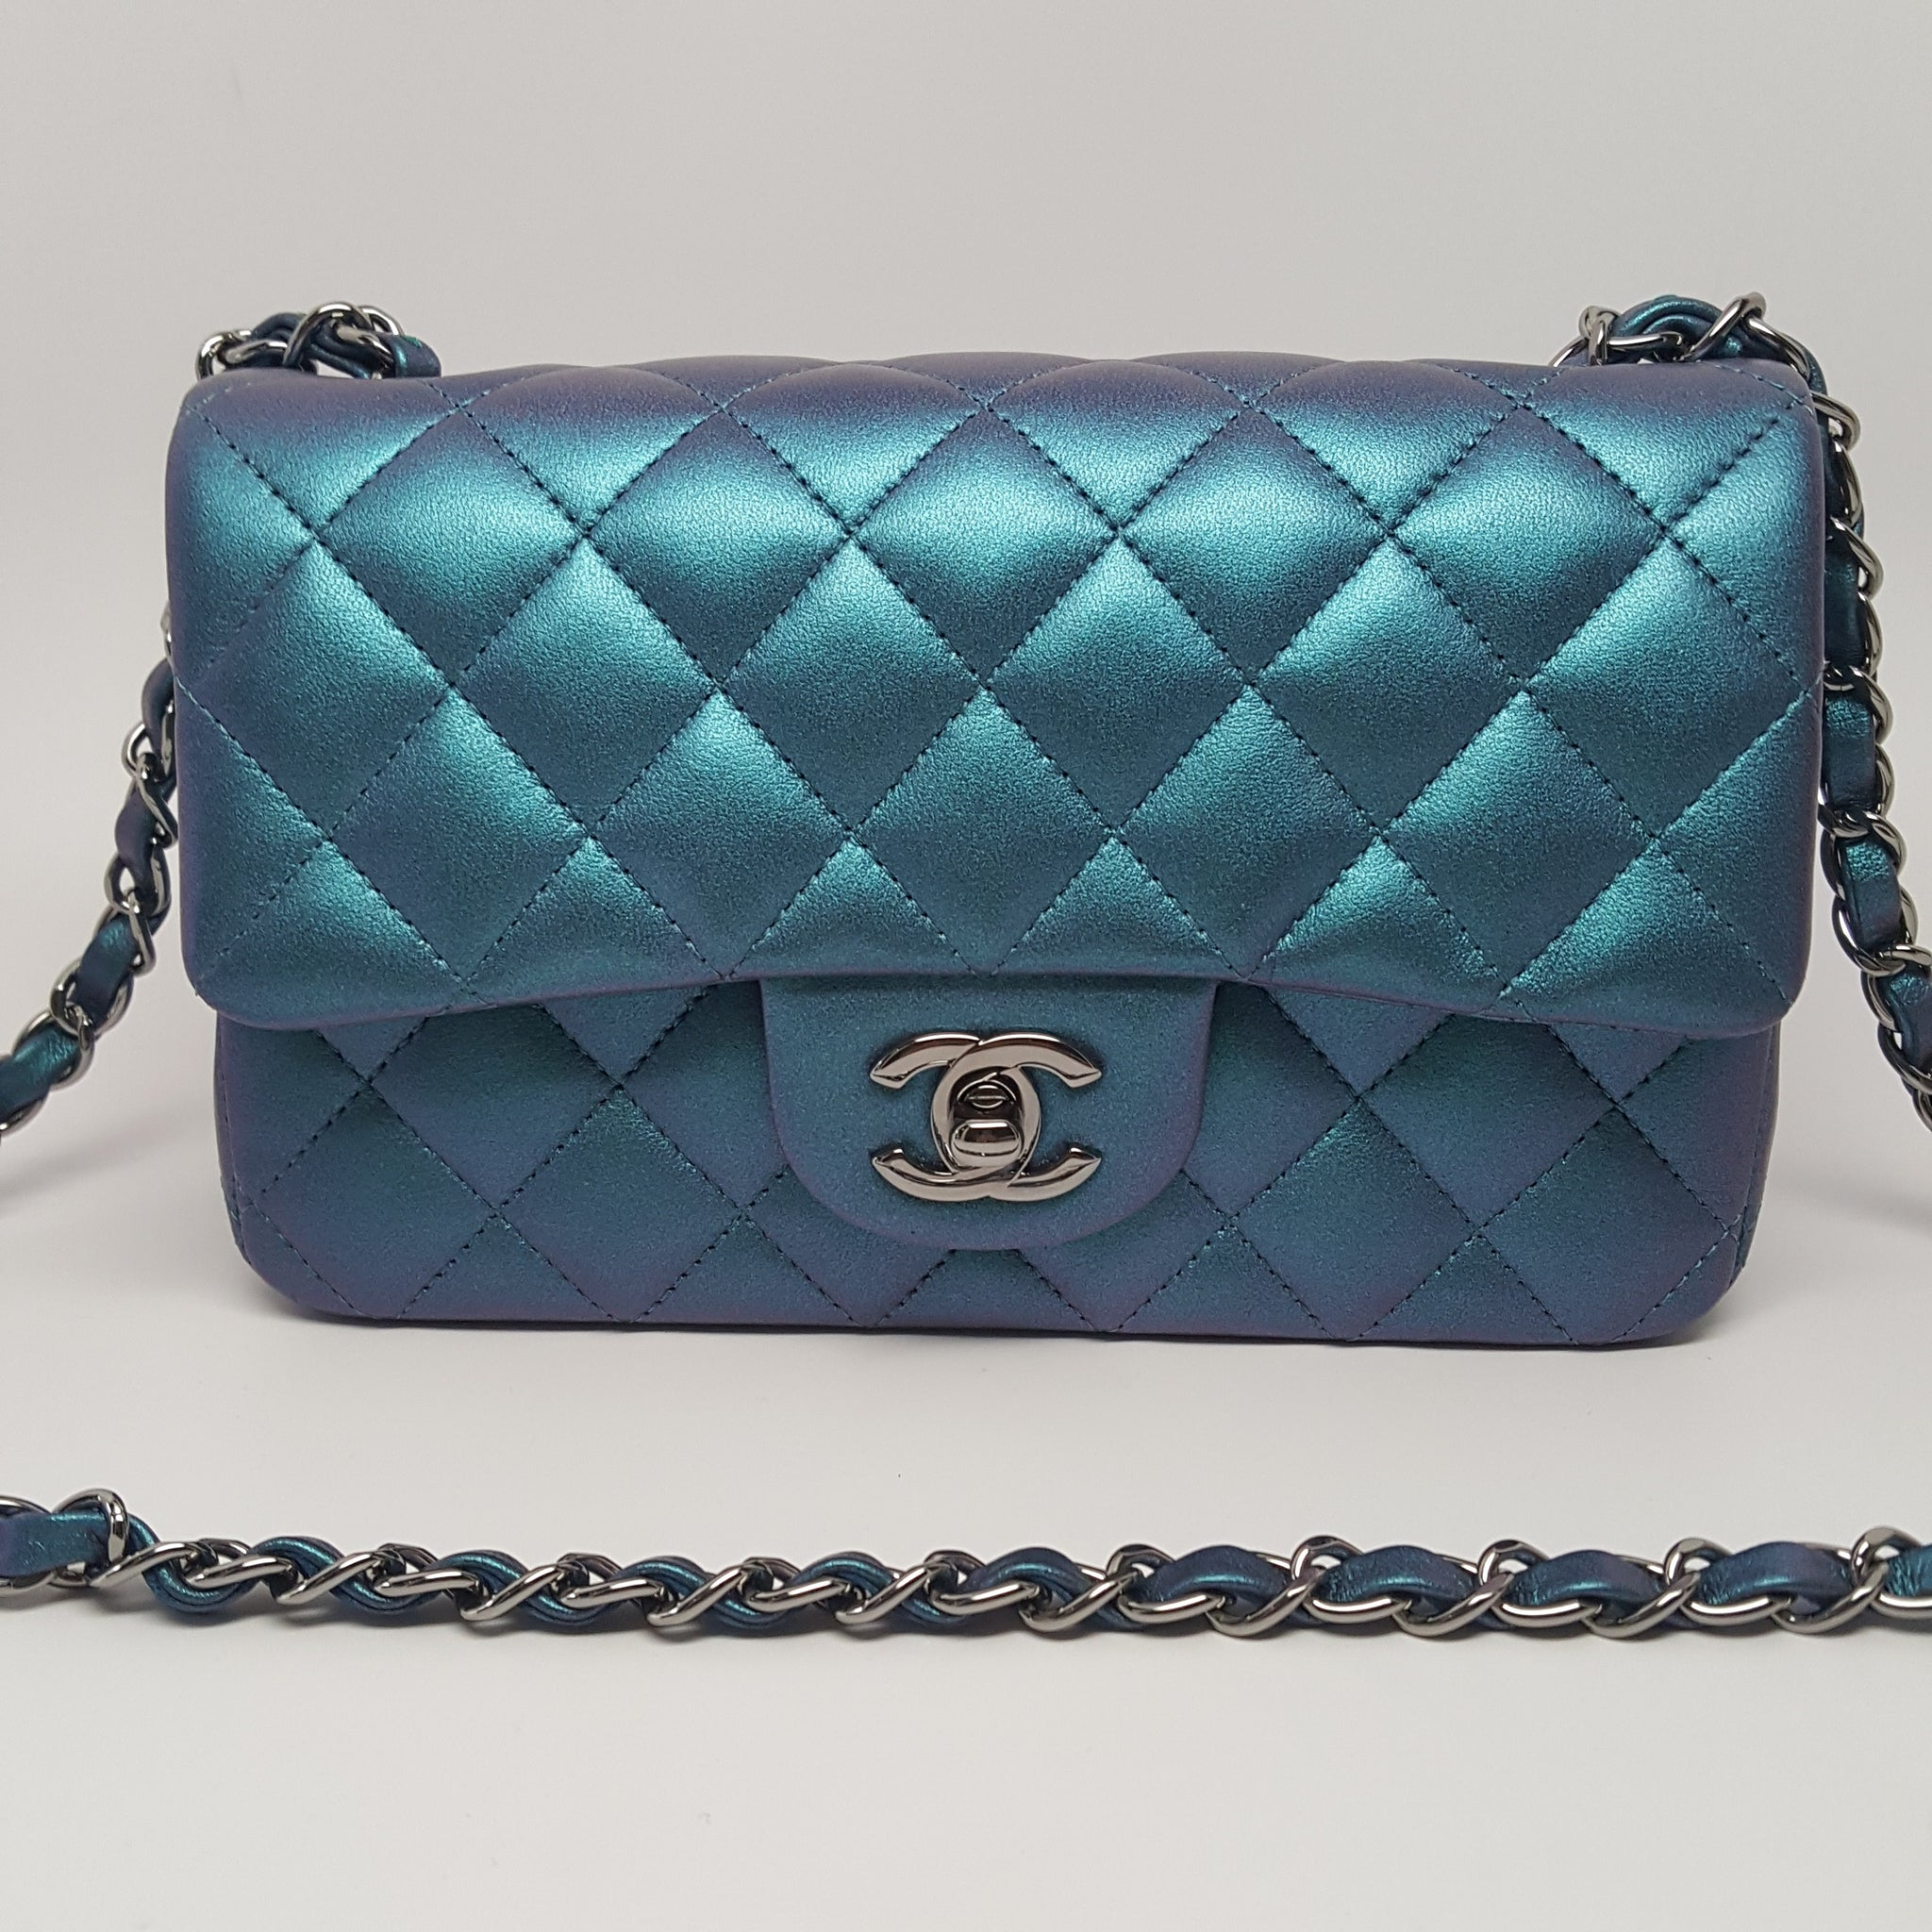 CHANEL CLASSIC METALLIC TURQUOISE QUILTED LAMBSKIN MINI FLAP BAG